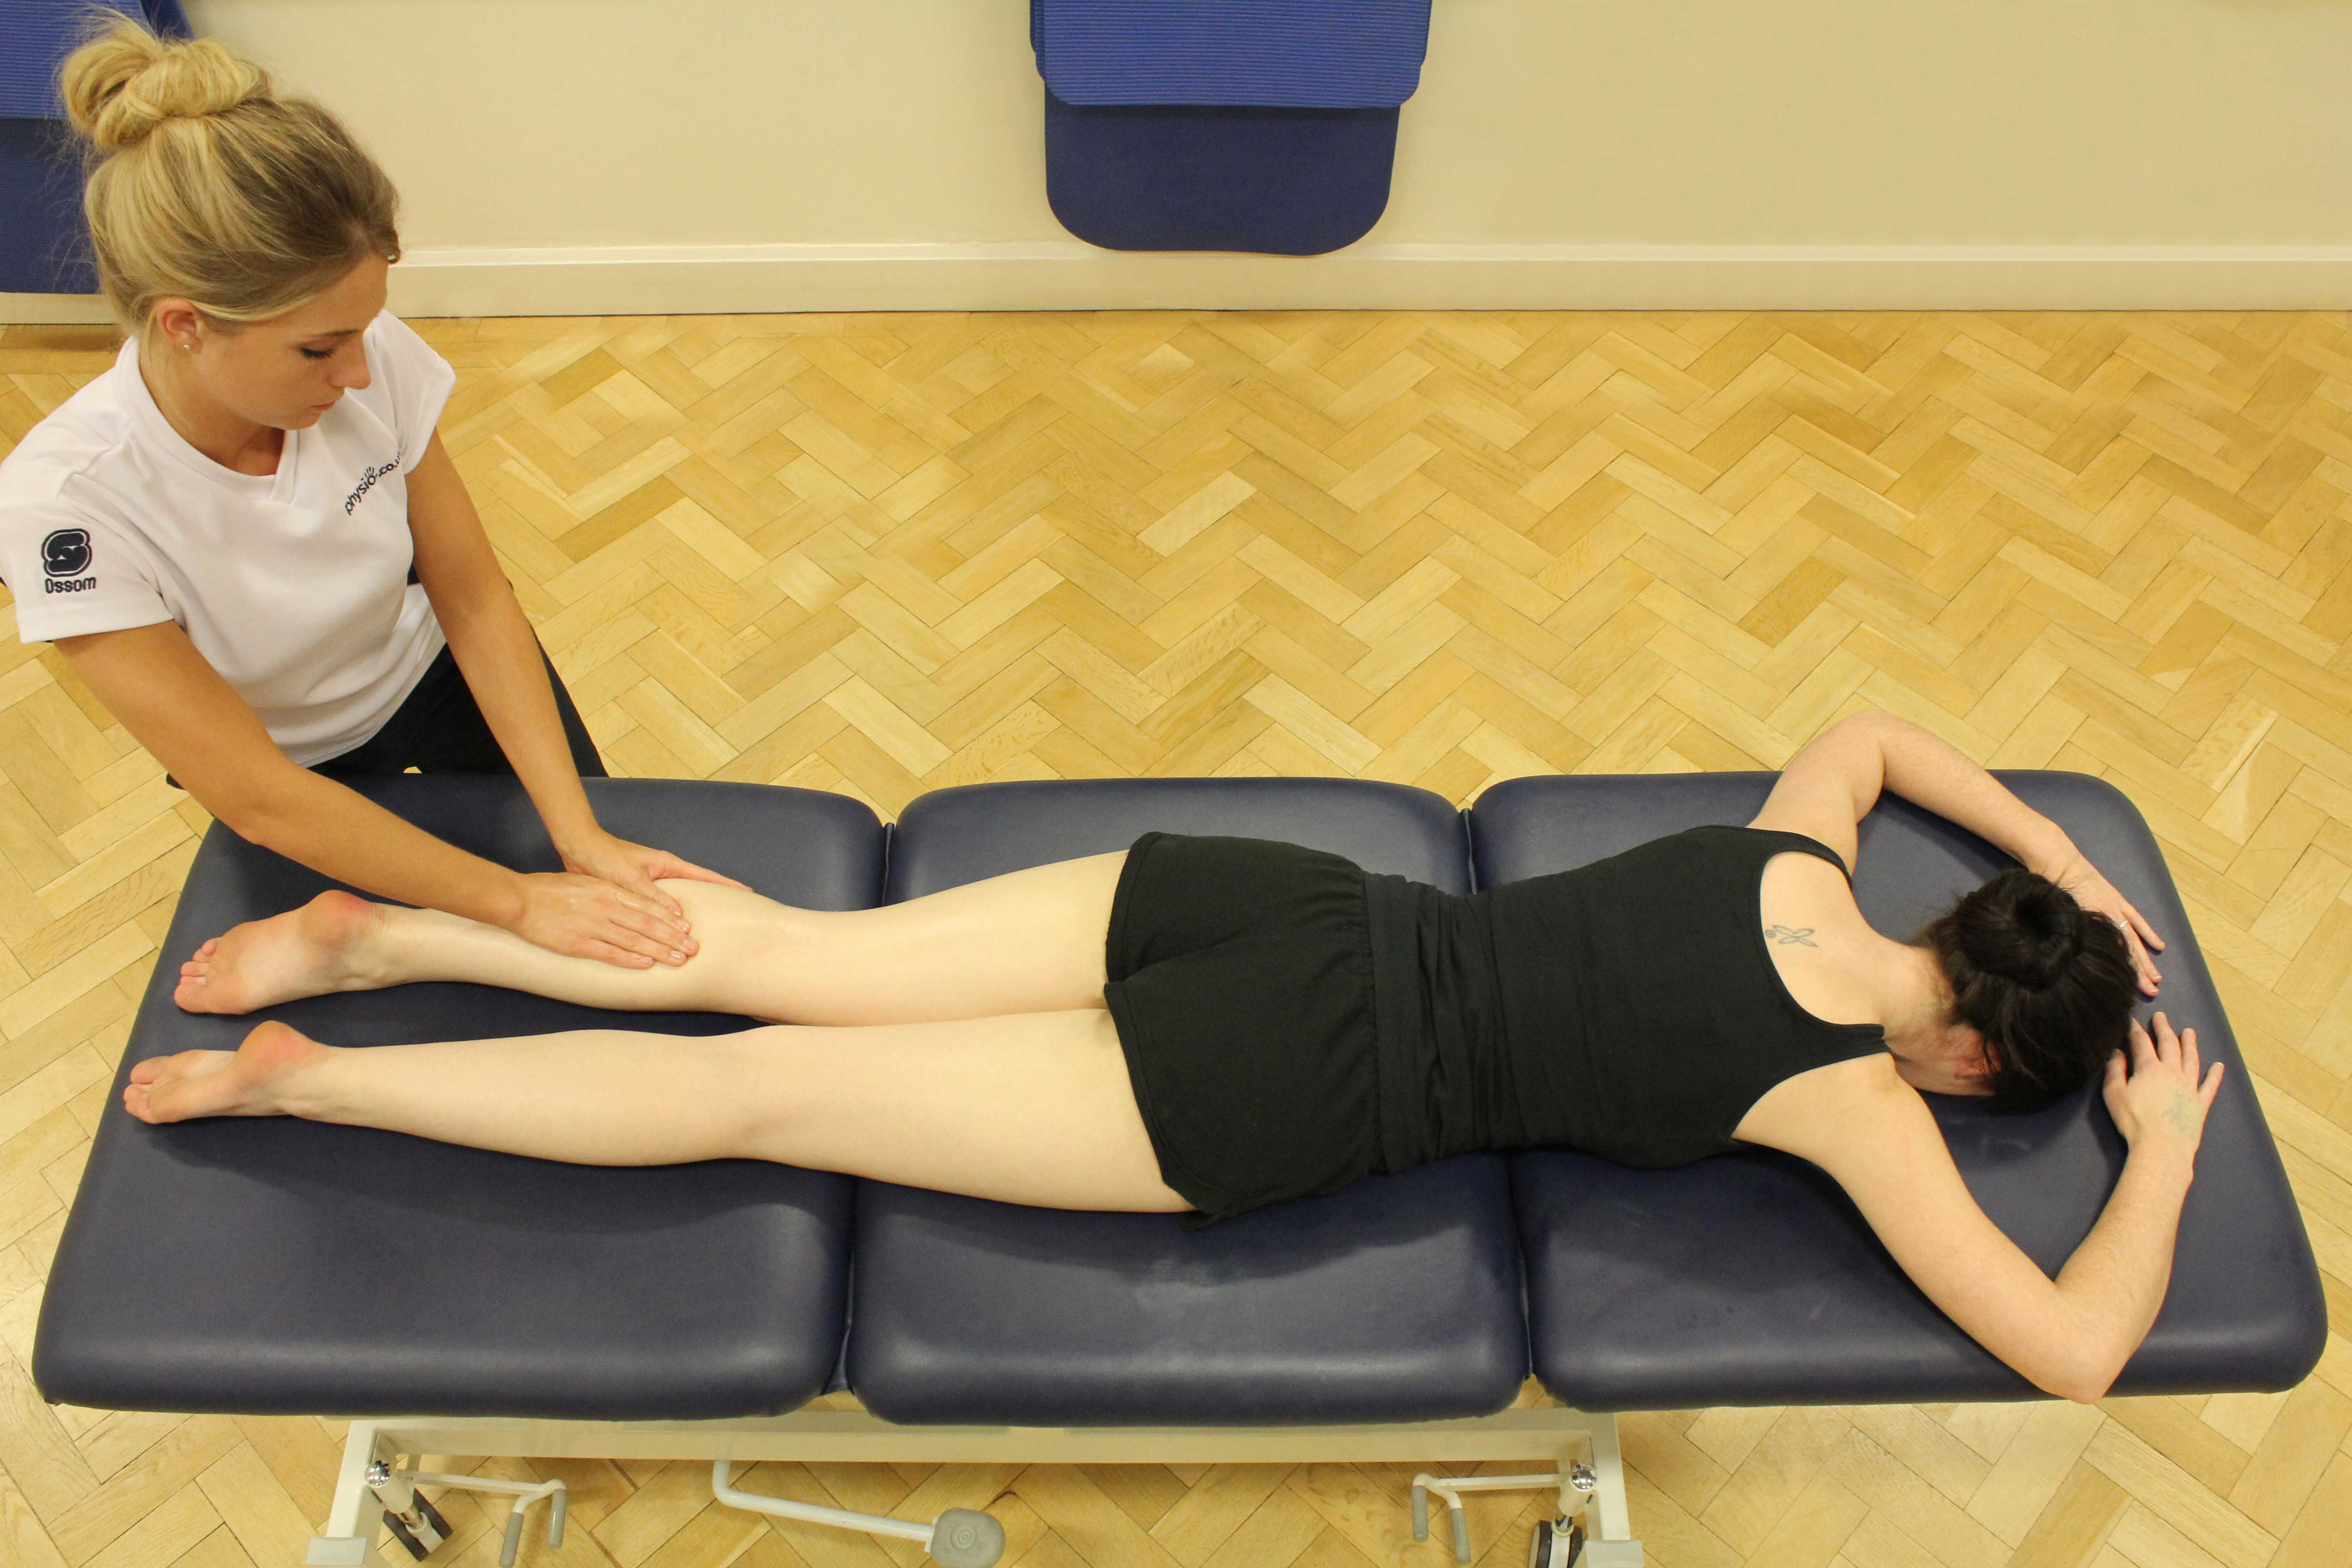 Soft tissue massage of the gastrocnemius muscle by an experienced therapist